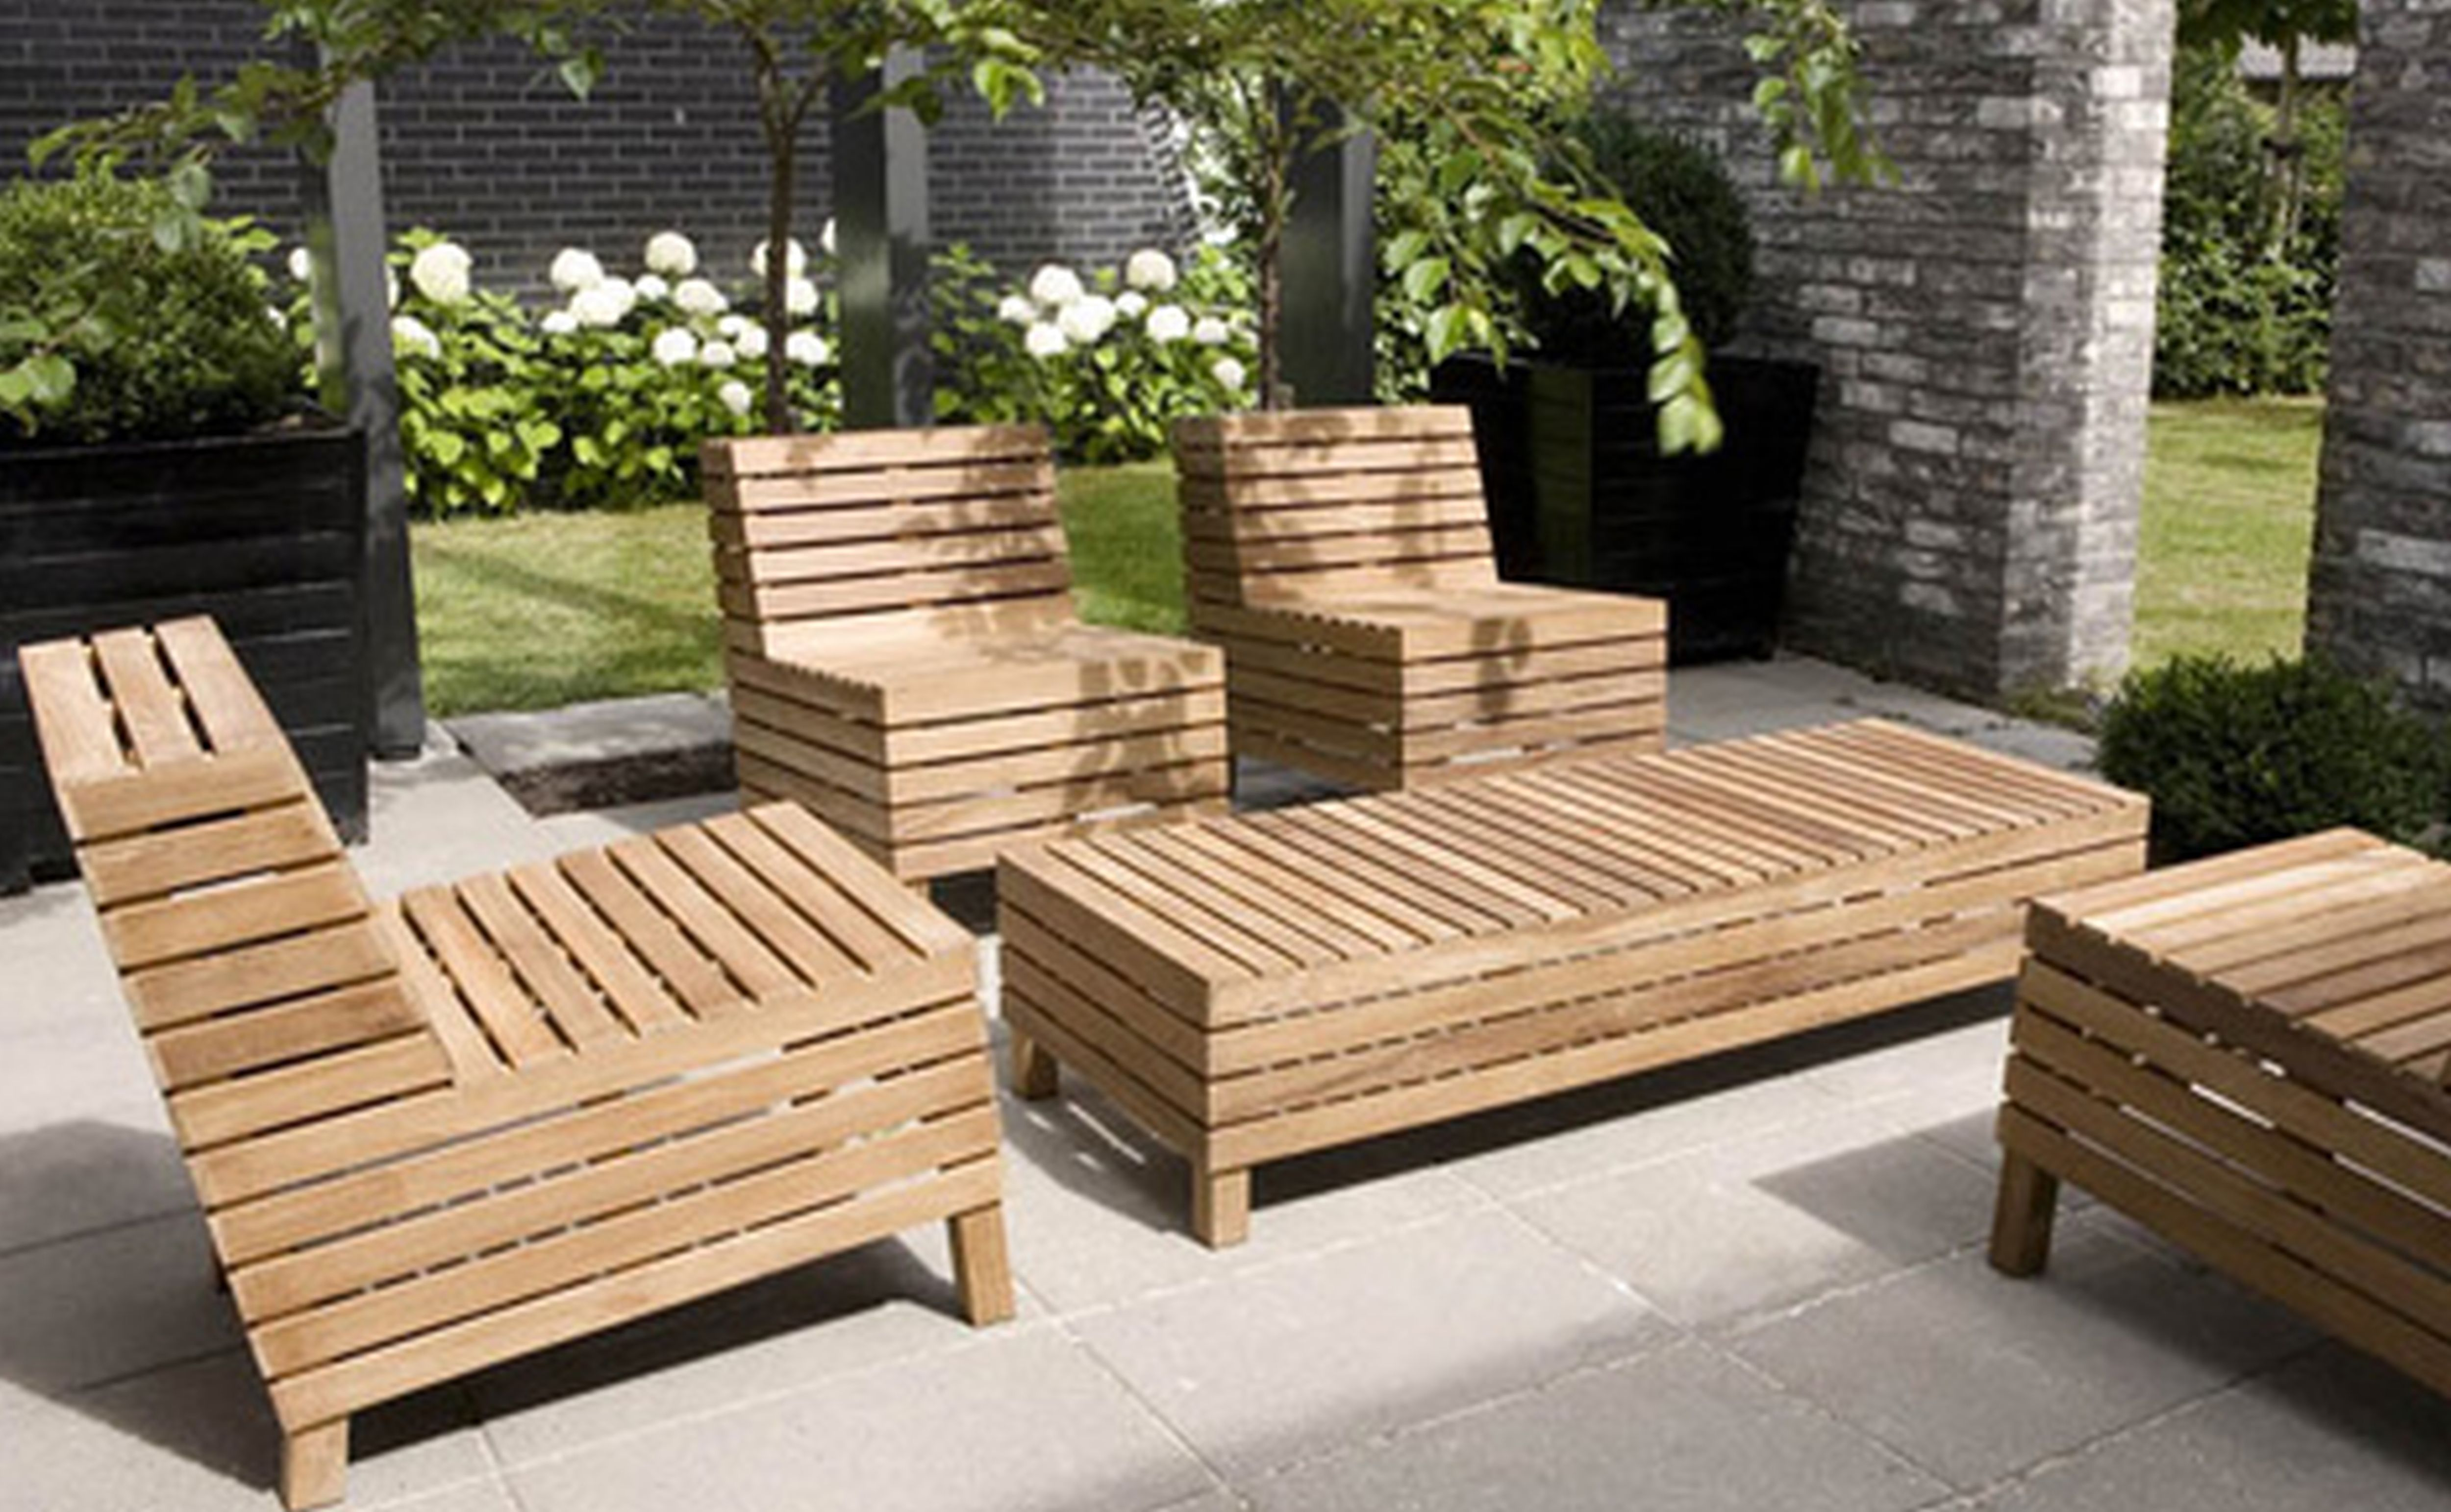 Images of Furniture Furniture Fascinating Patio Design Natural Brown Finishing  Striped Solid Oak Wooden solid wood outdoor furniture